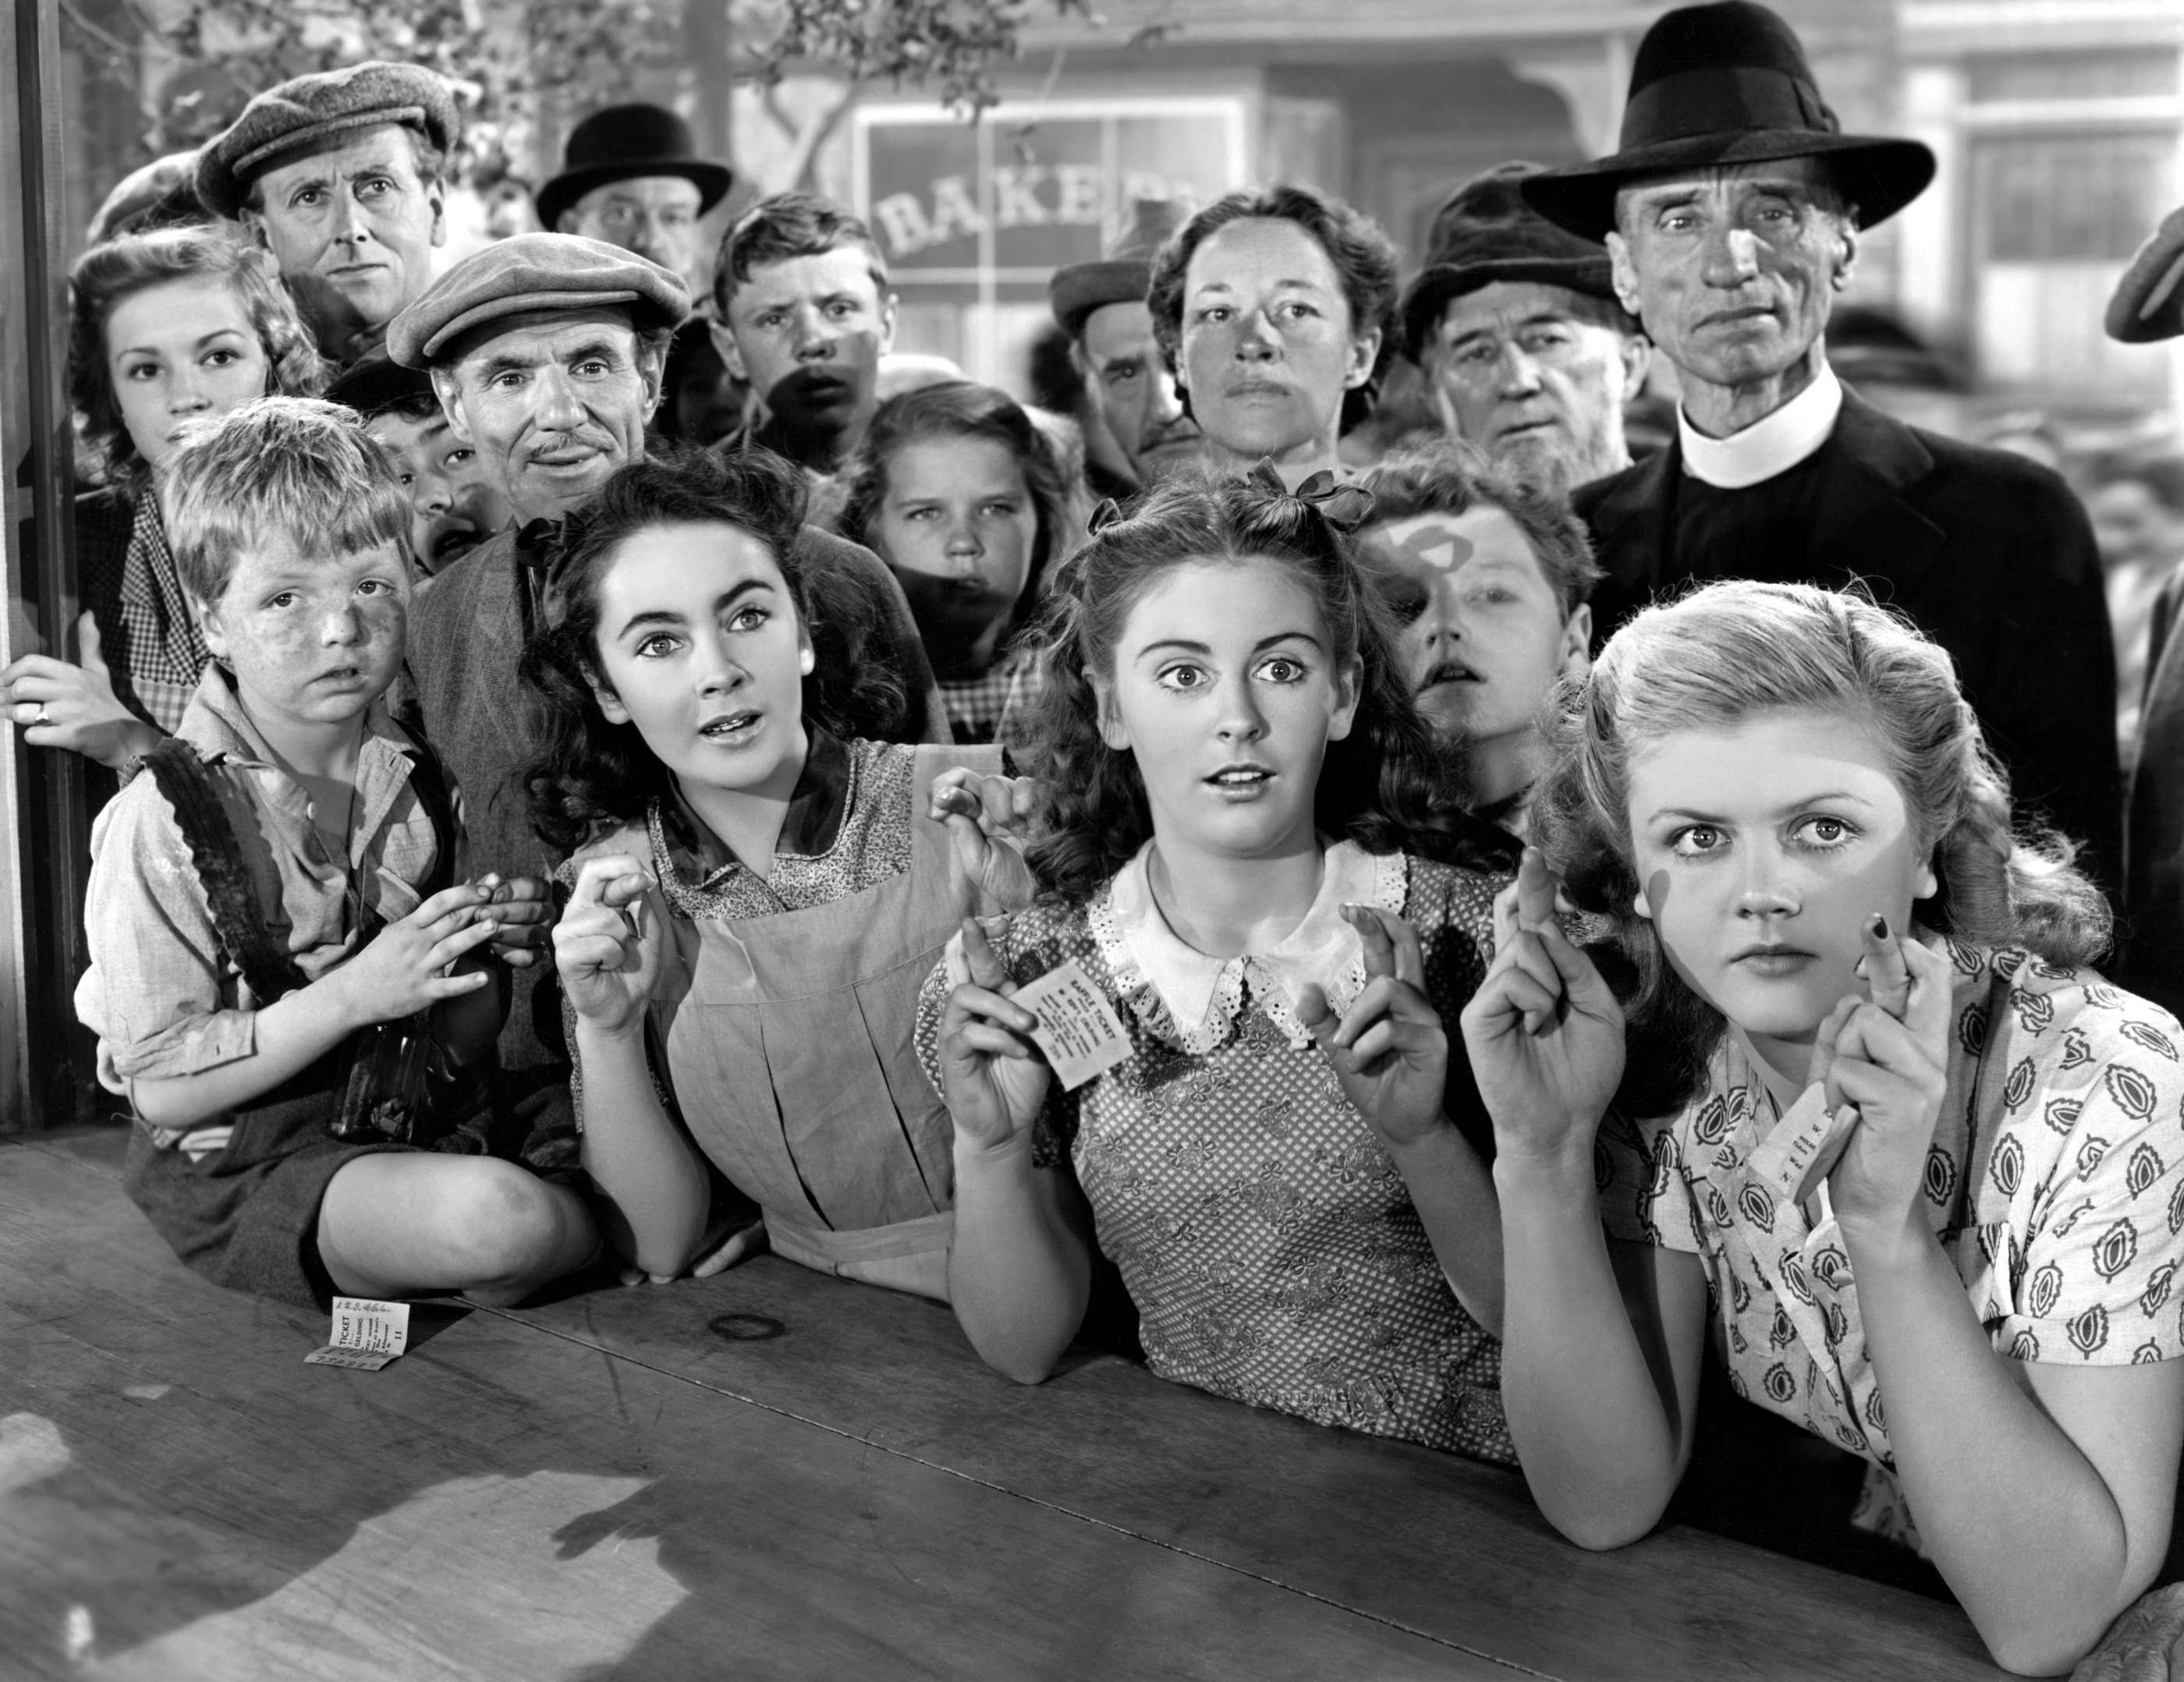 Front row kids (L to R) Jackie Jenkins, Elizabeth Taylor, Juanita Quigley, Angela Lansbury, with Anne Revere (3rd row center)